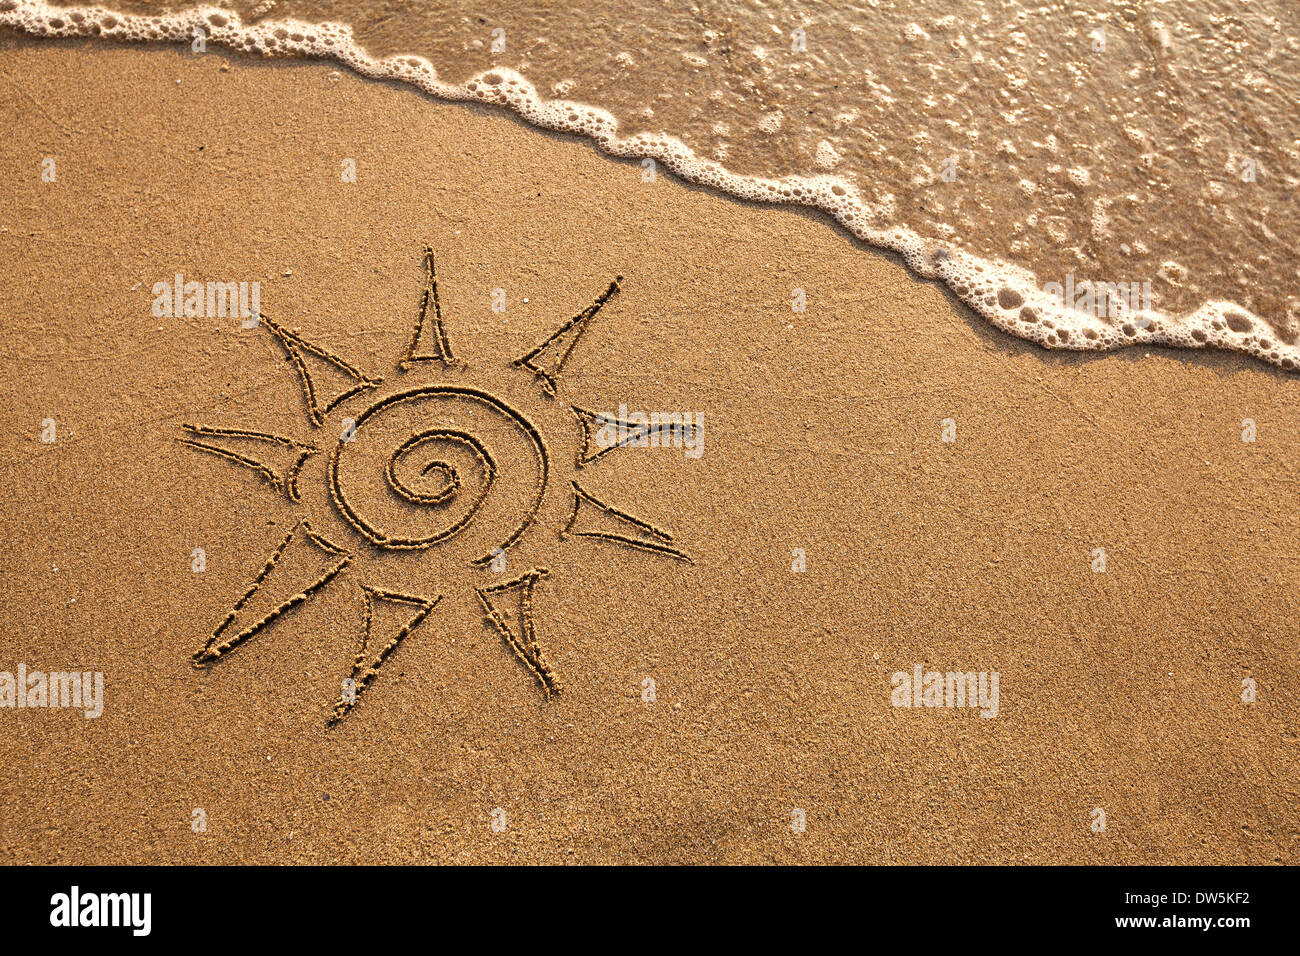 sun on the beach - Stock Image